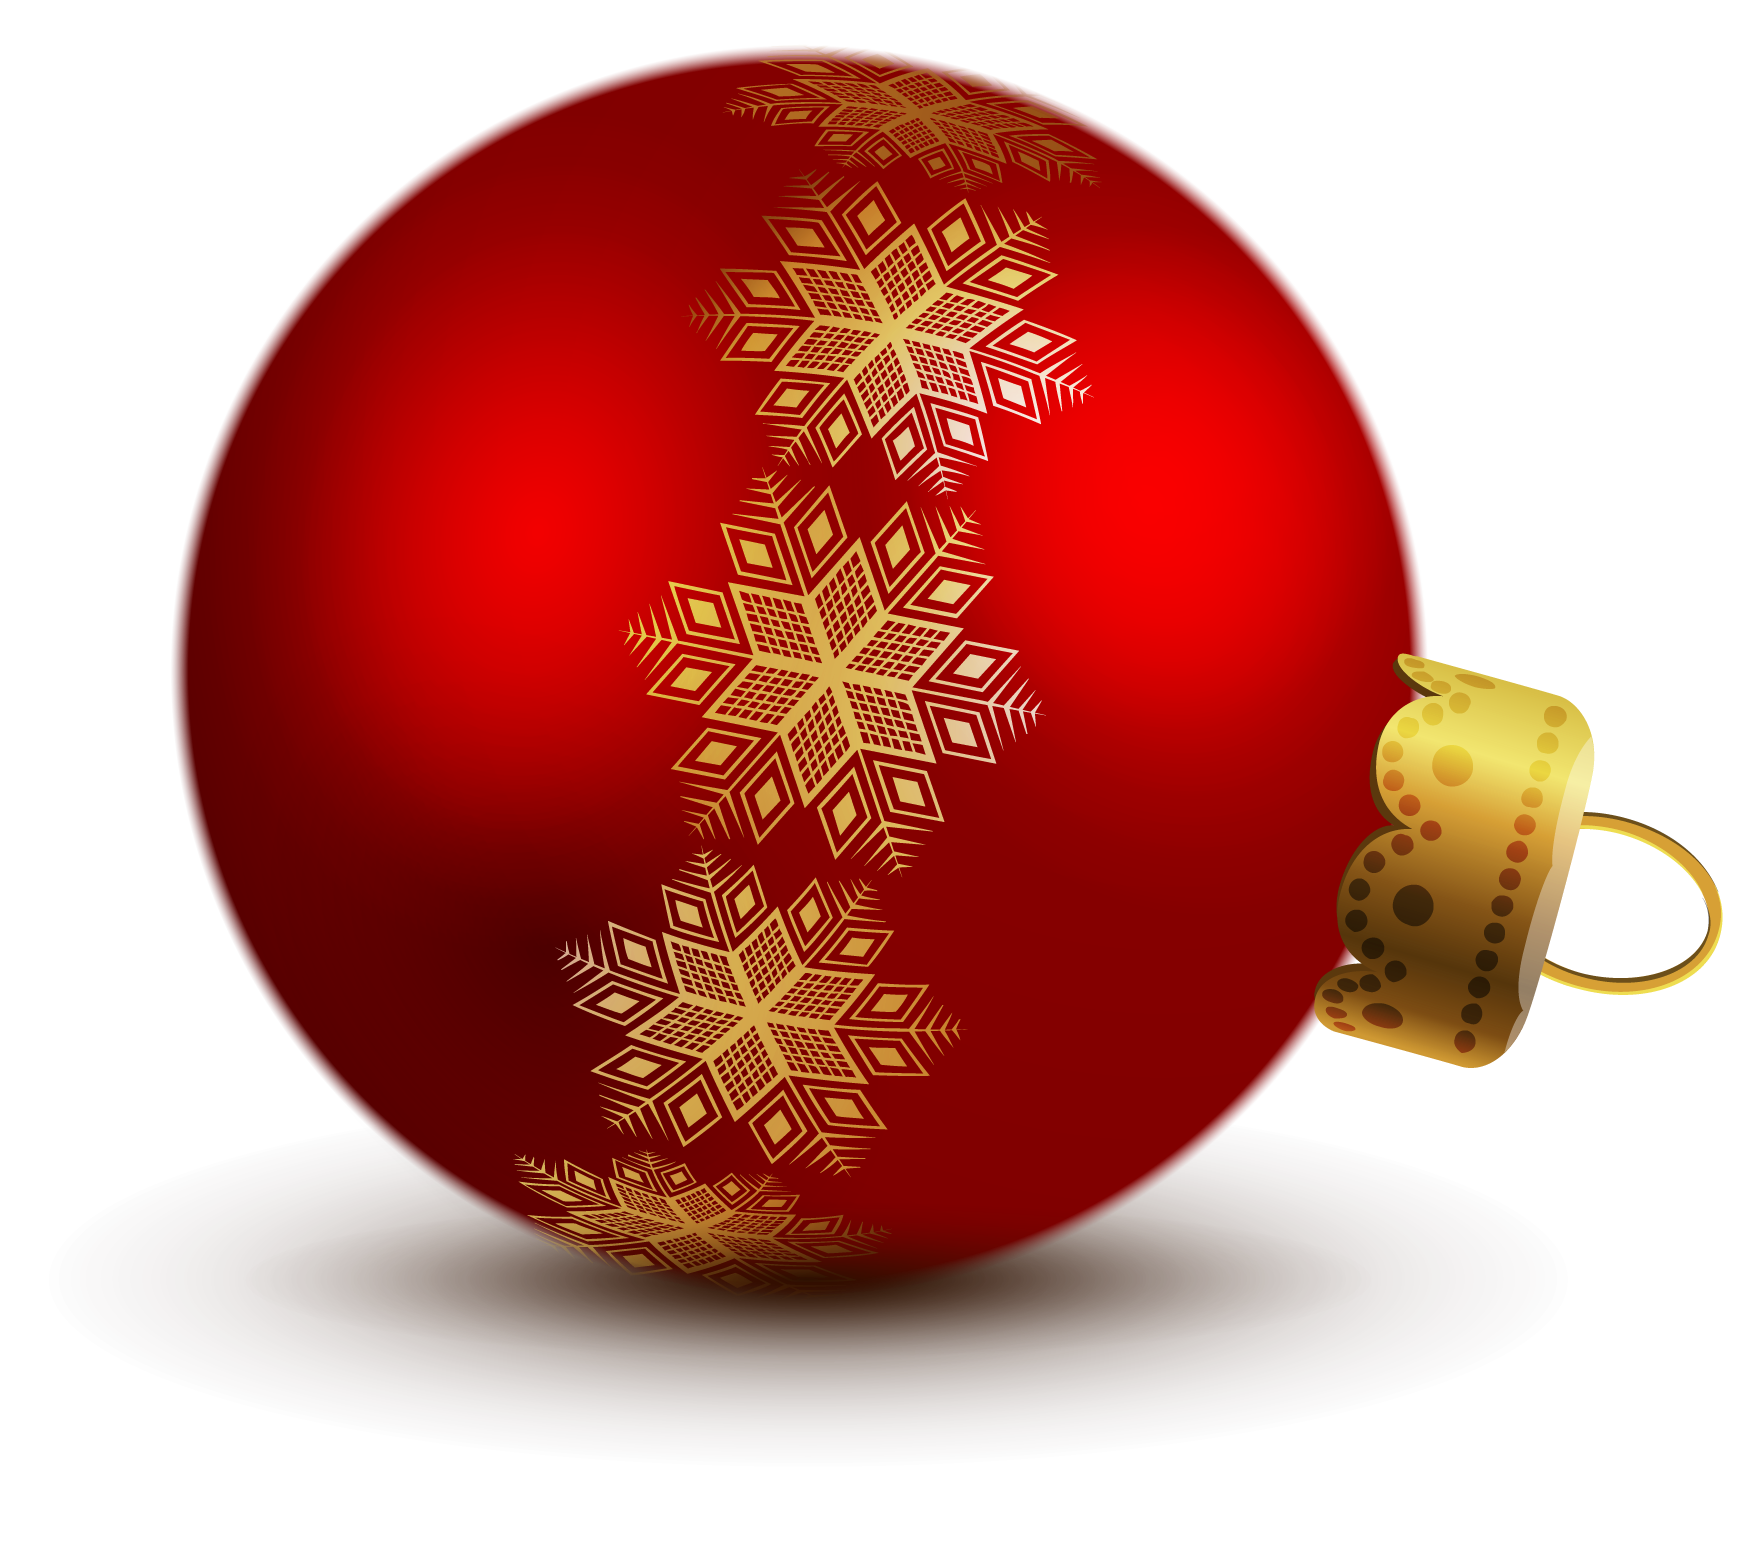 Hammer clipart ball. Transparent red christmas ornaments